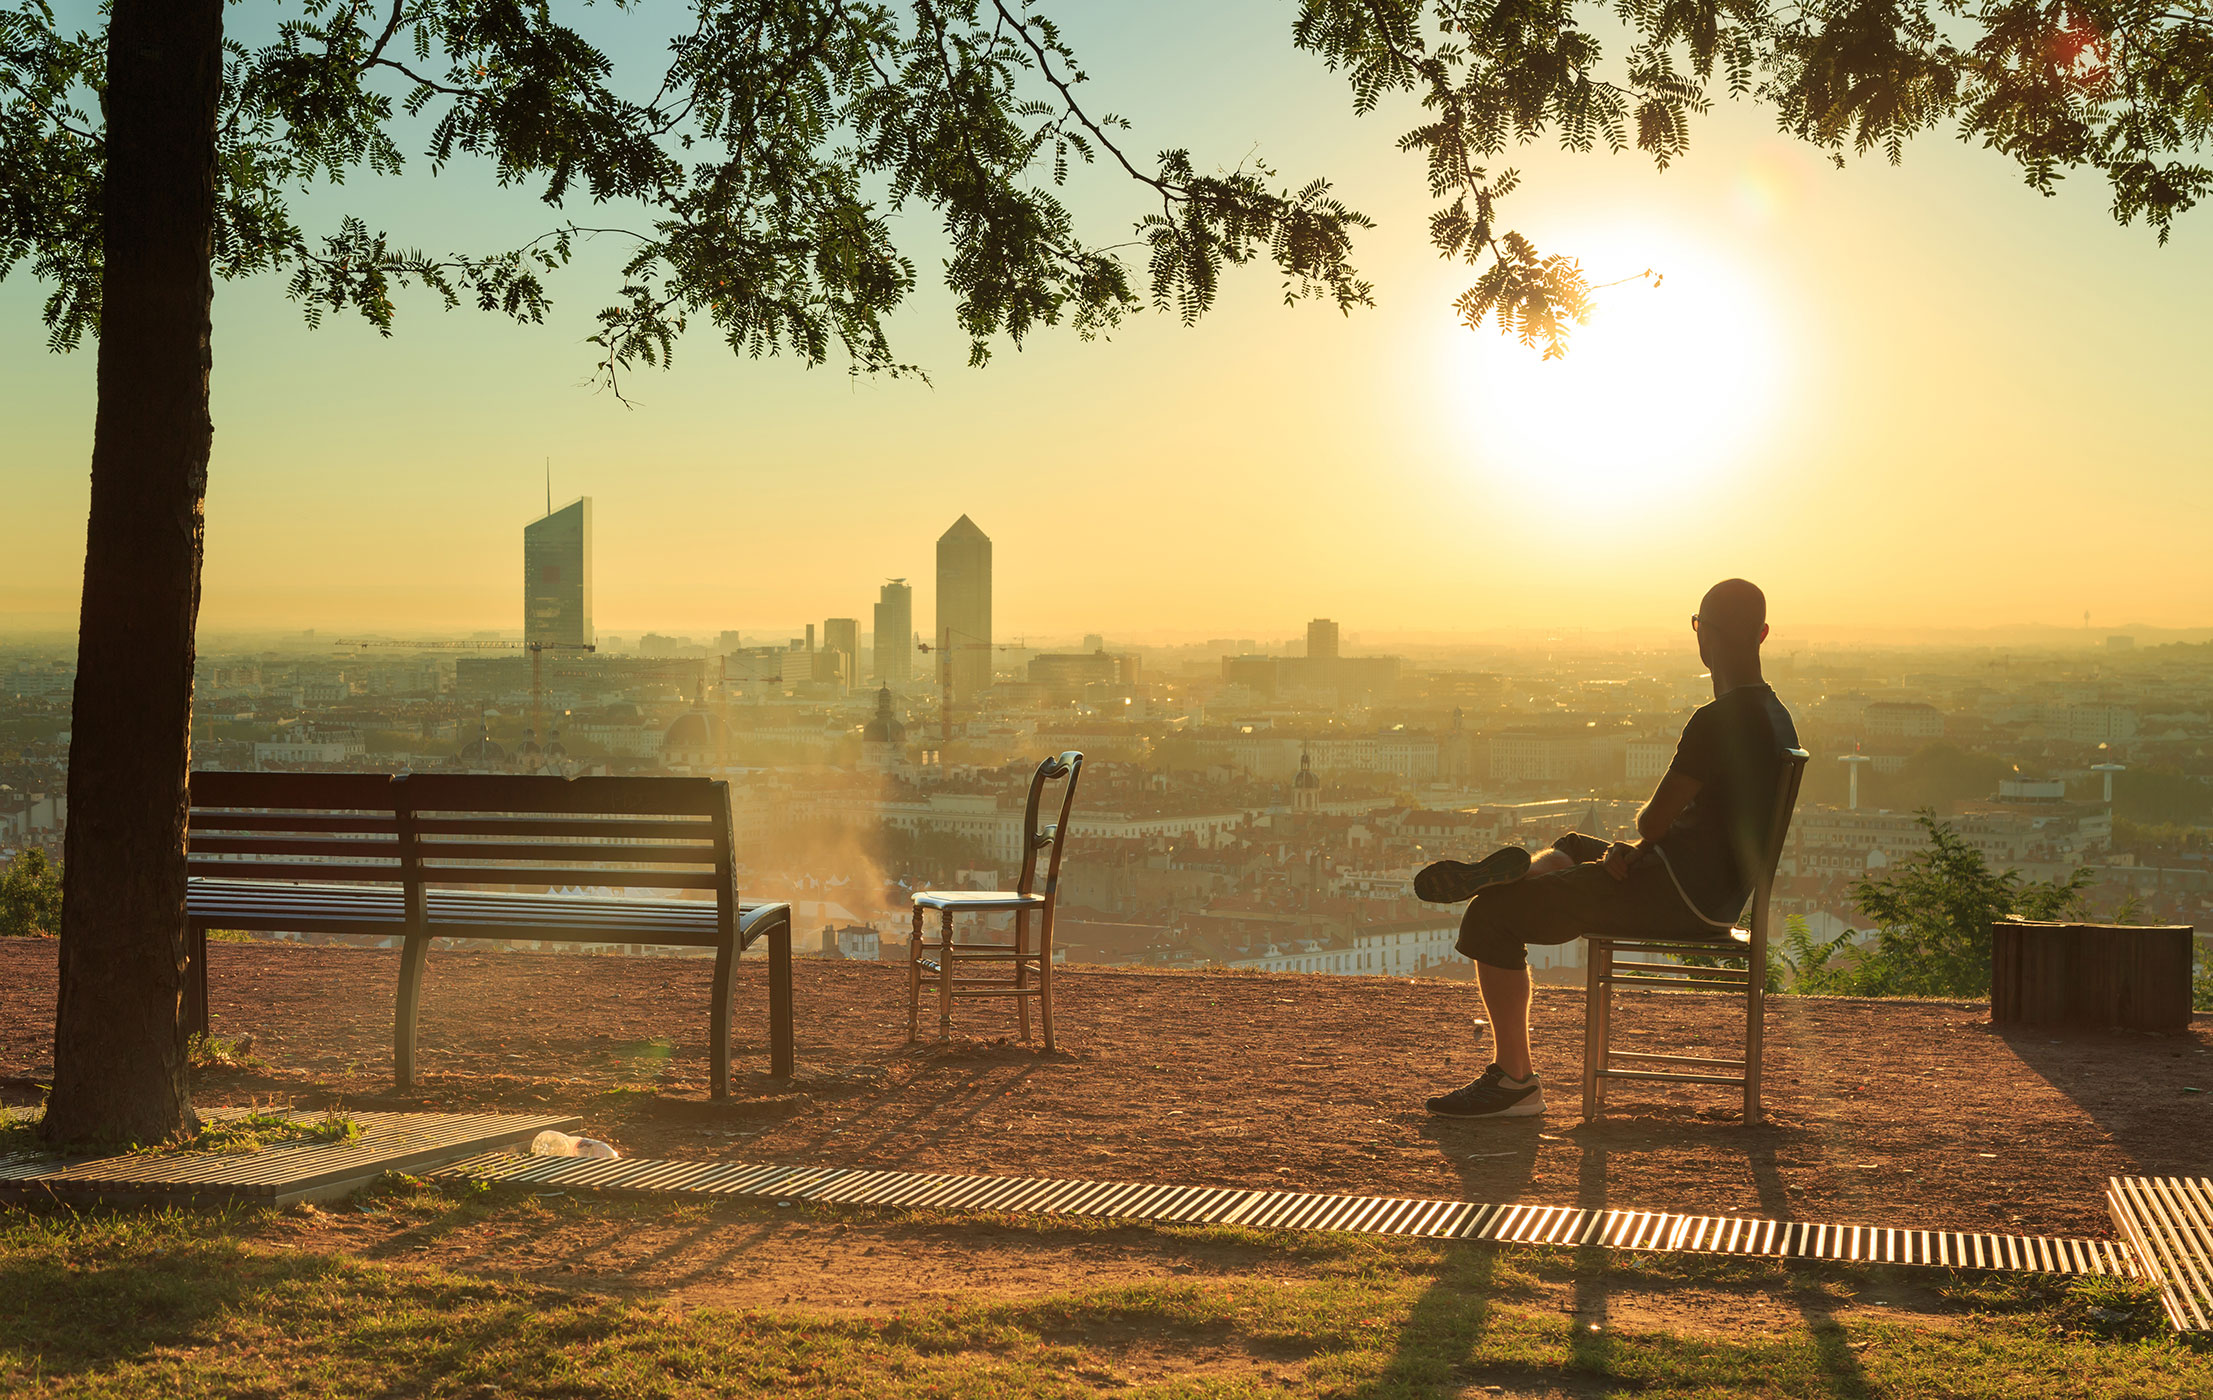 Person sitting on chair facing sunset